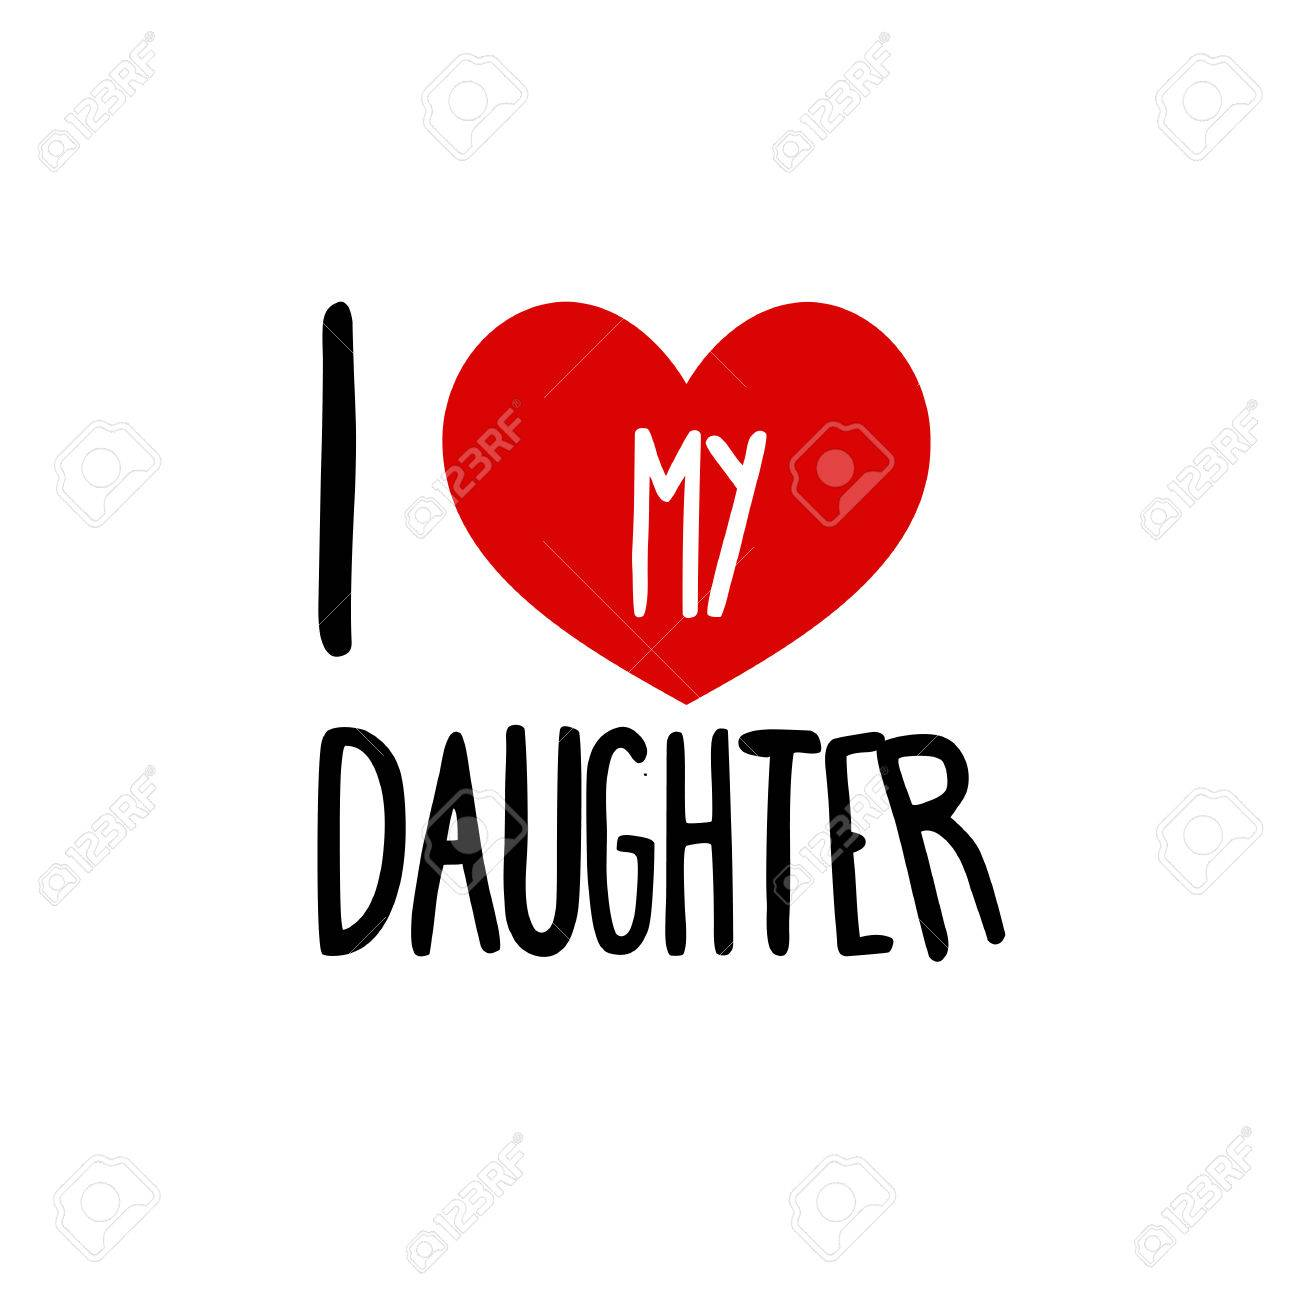 I love my daughter family red heart simple symbol white background i love my daughter family red heart simple symbol white background calligraphic inscription buycottarizona Image collections